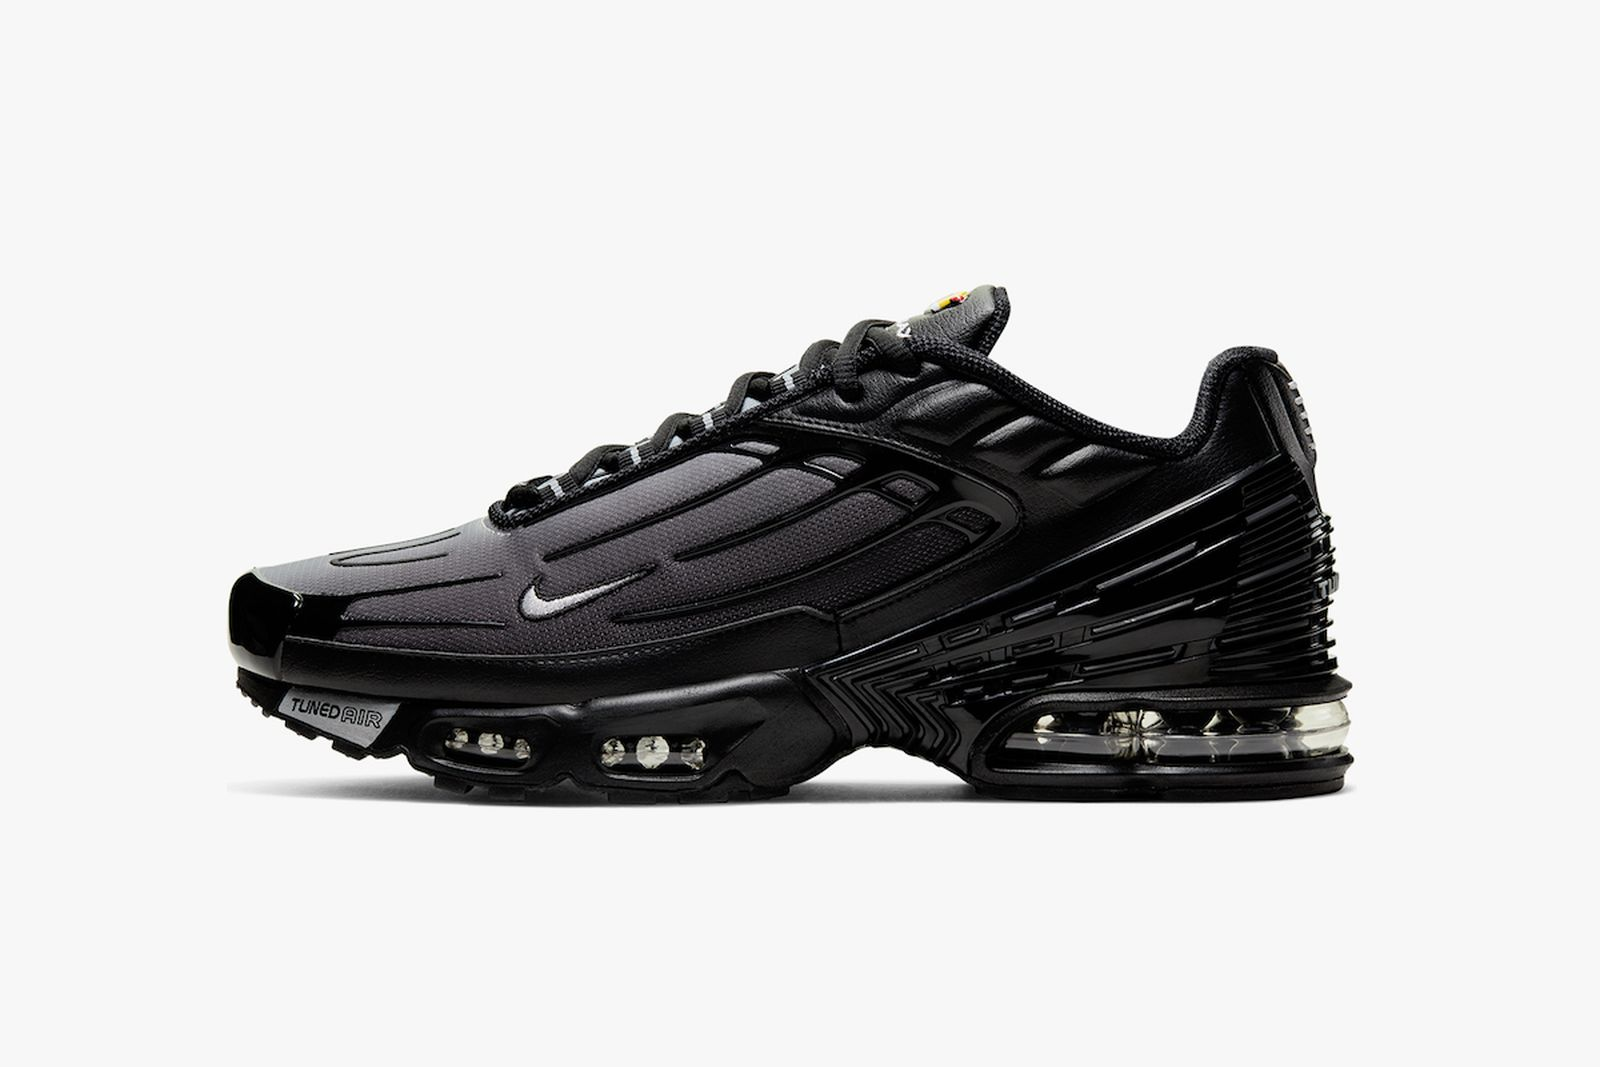 nike-air-max-plus-3-release-date-price-004